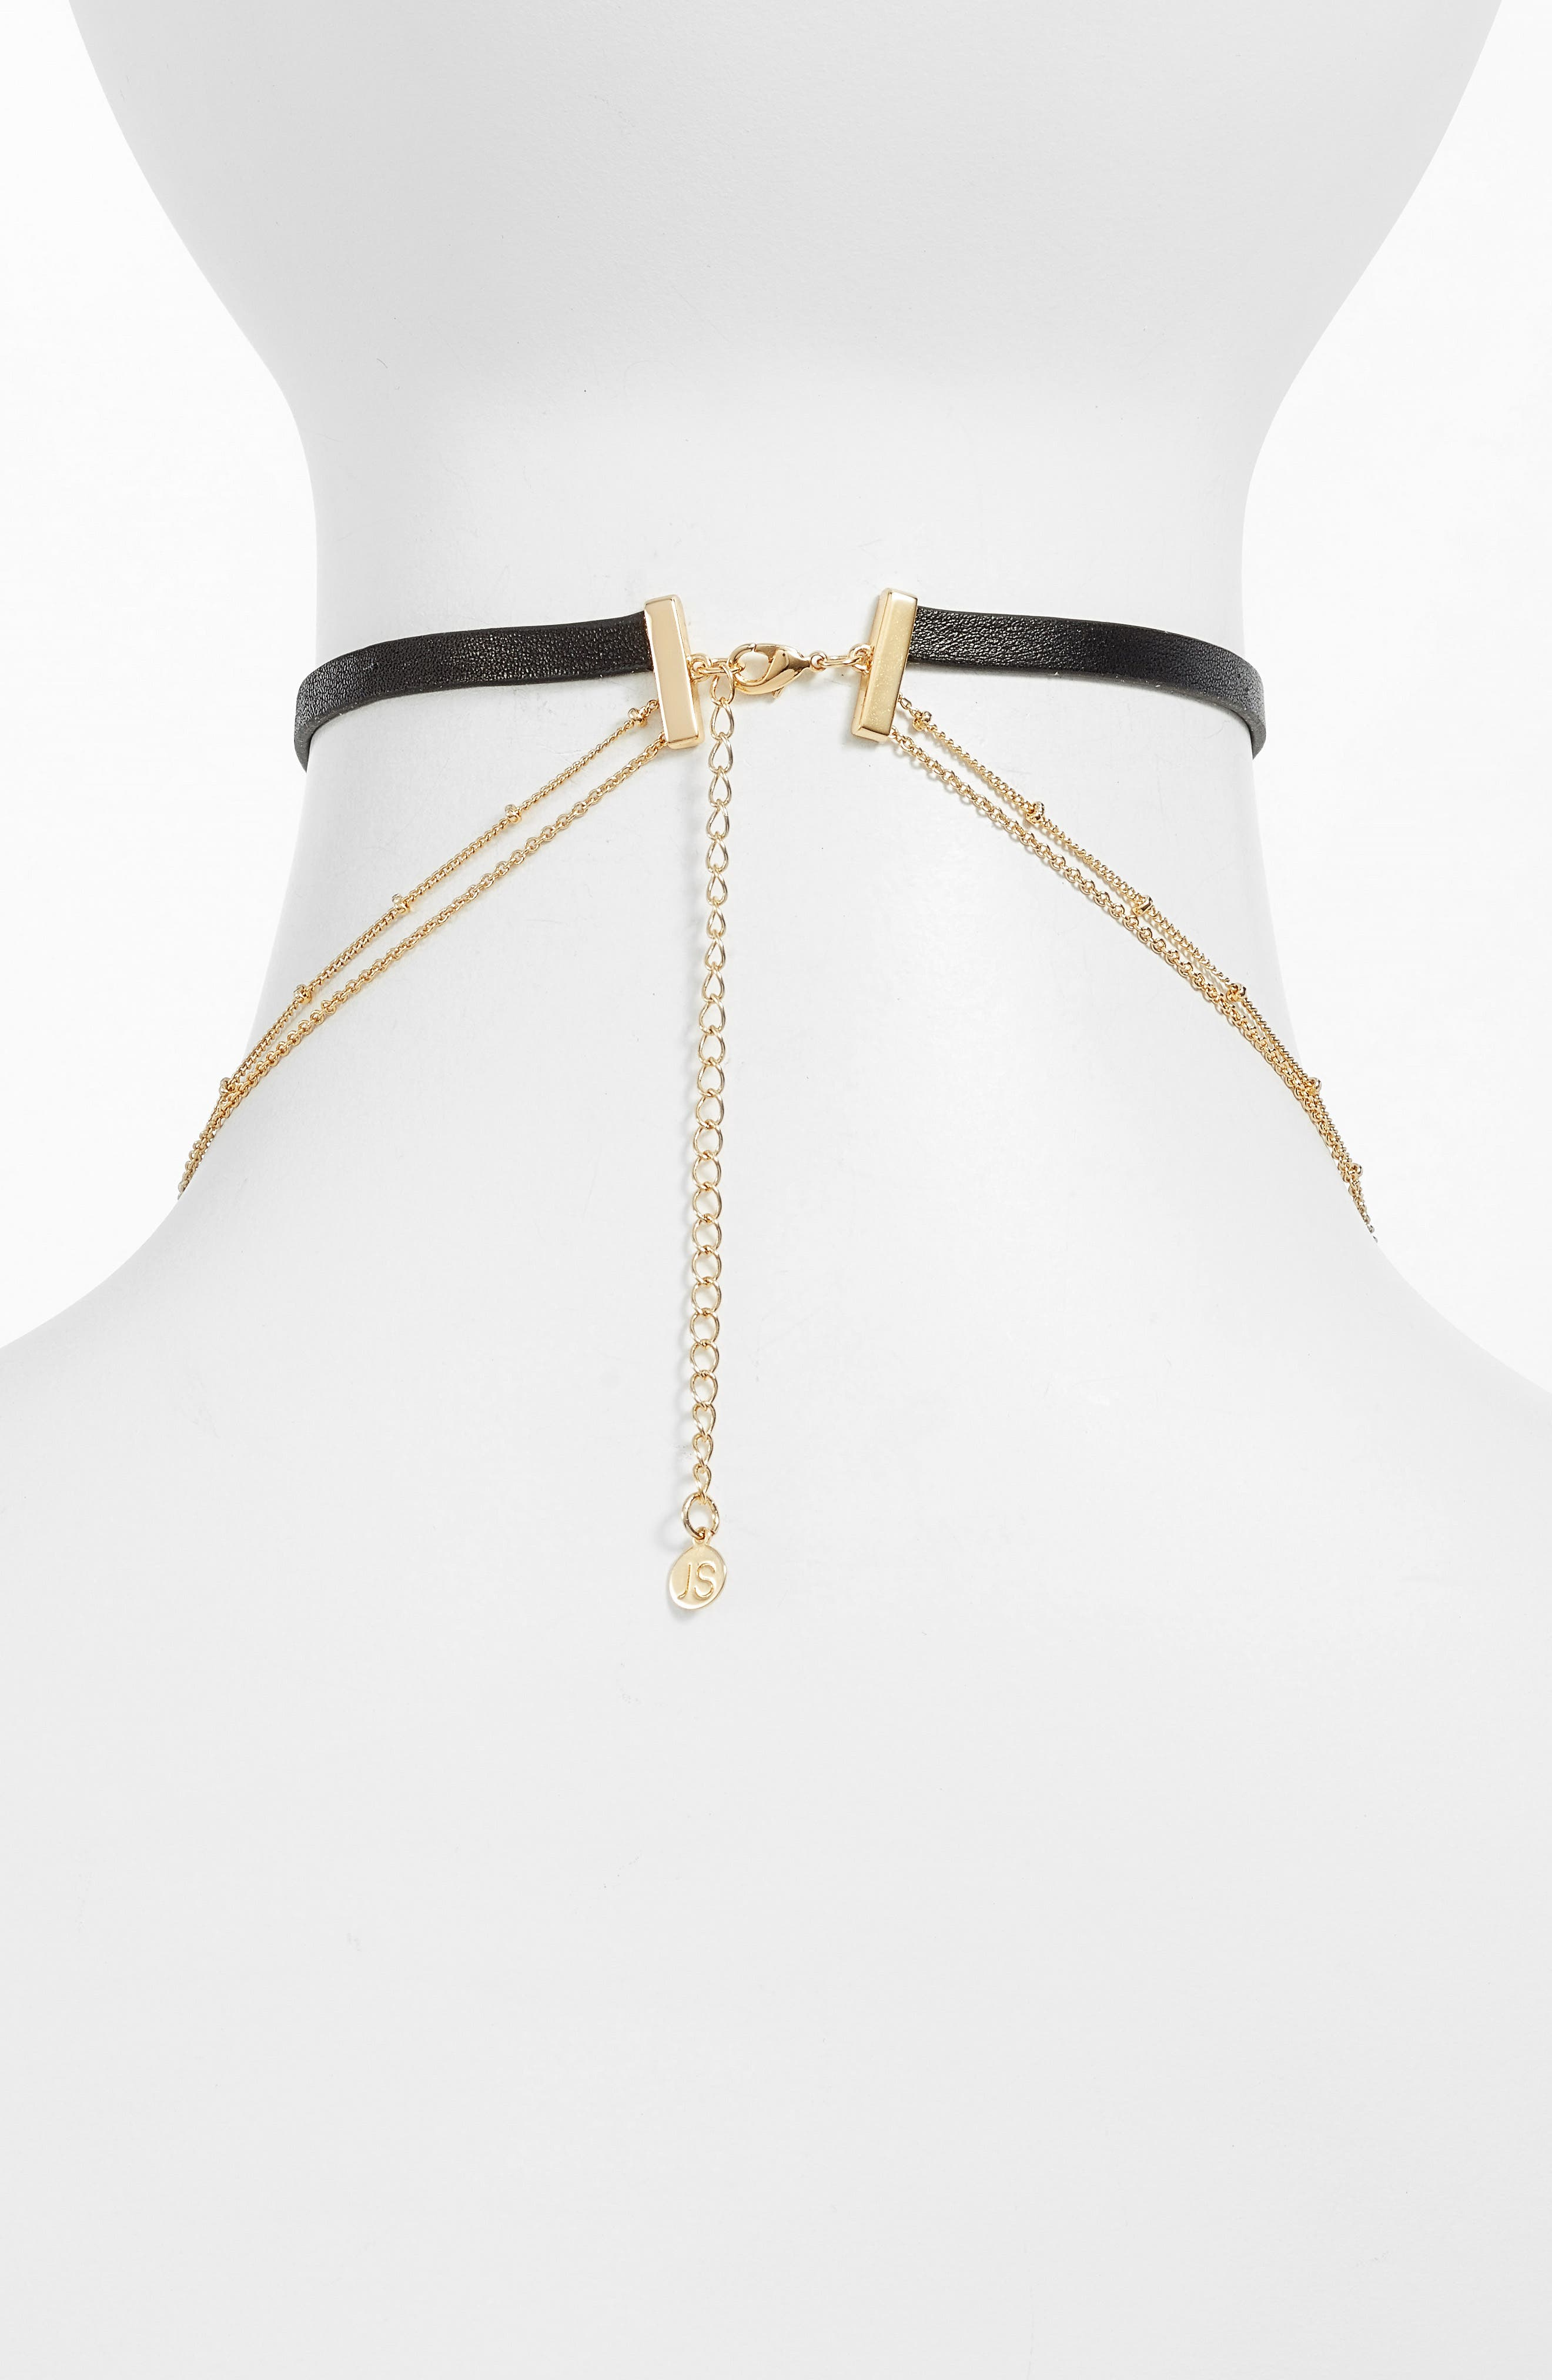 Theo Chain Layered Choker,                             Alternate thumbnail 2, color,                             710